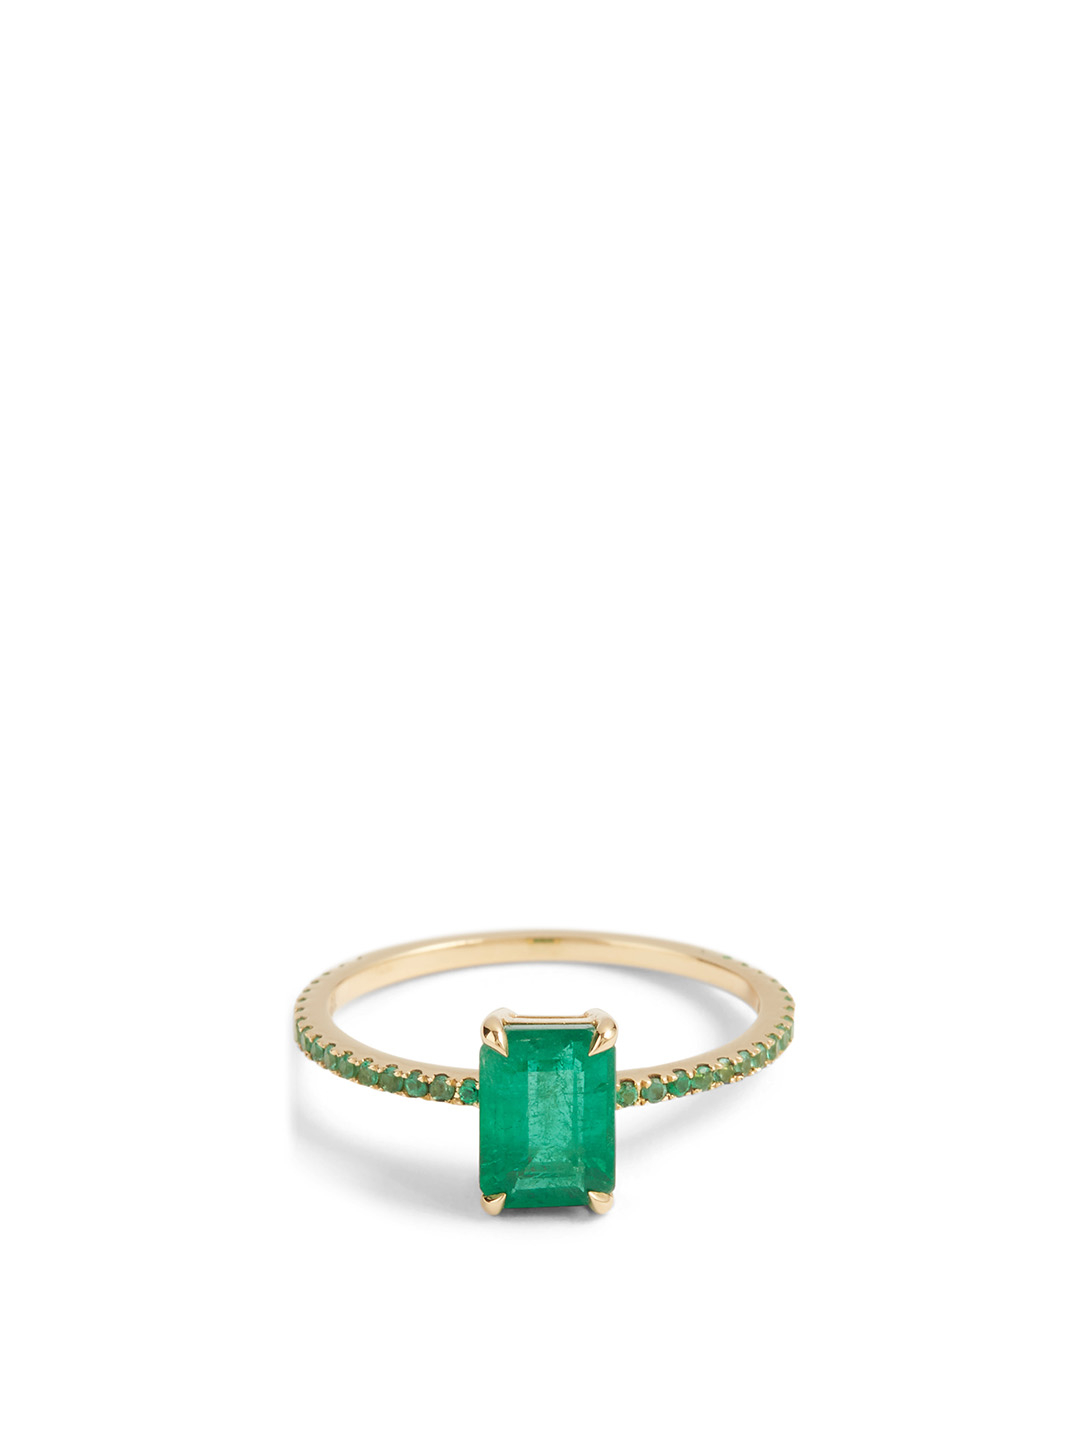 YI COLLECTION 18K Gold Ring With Emerald Women's Metallic